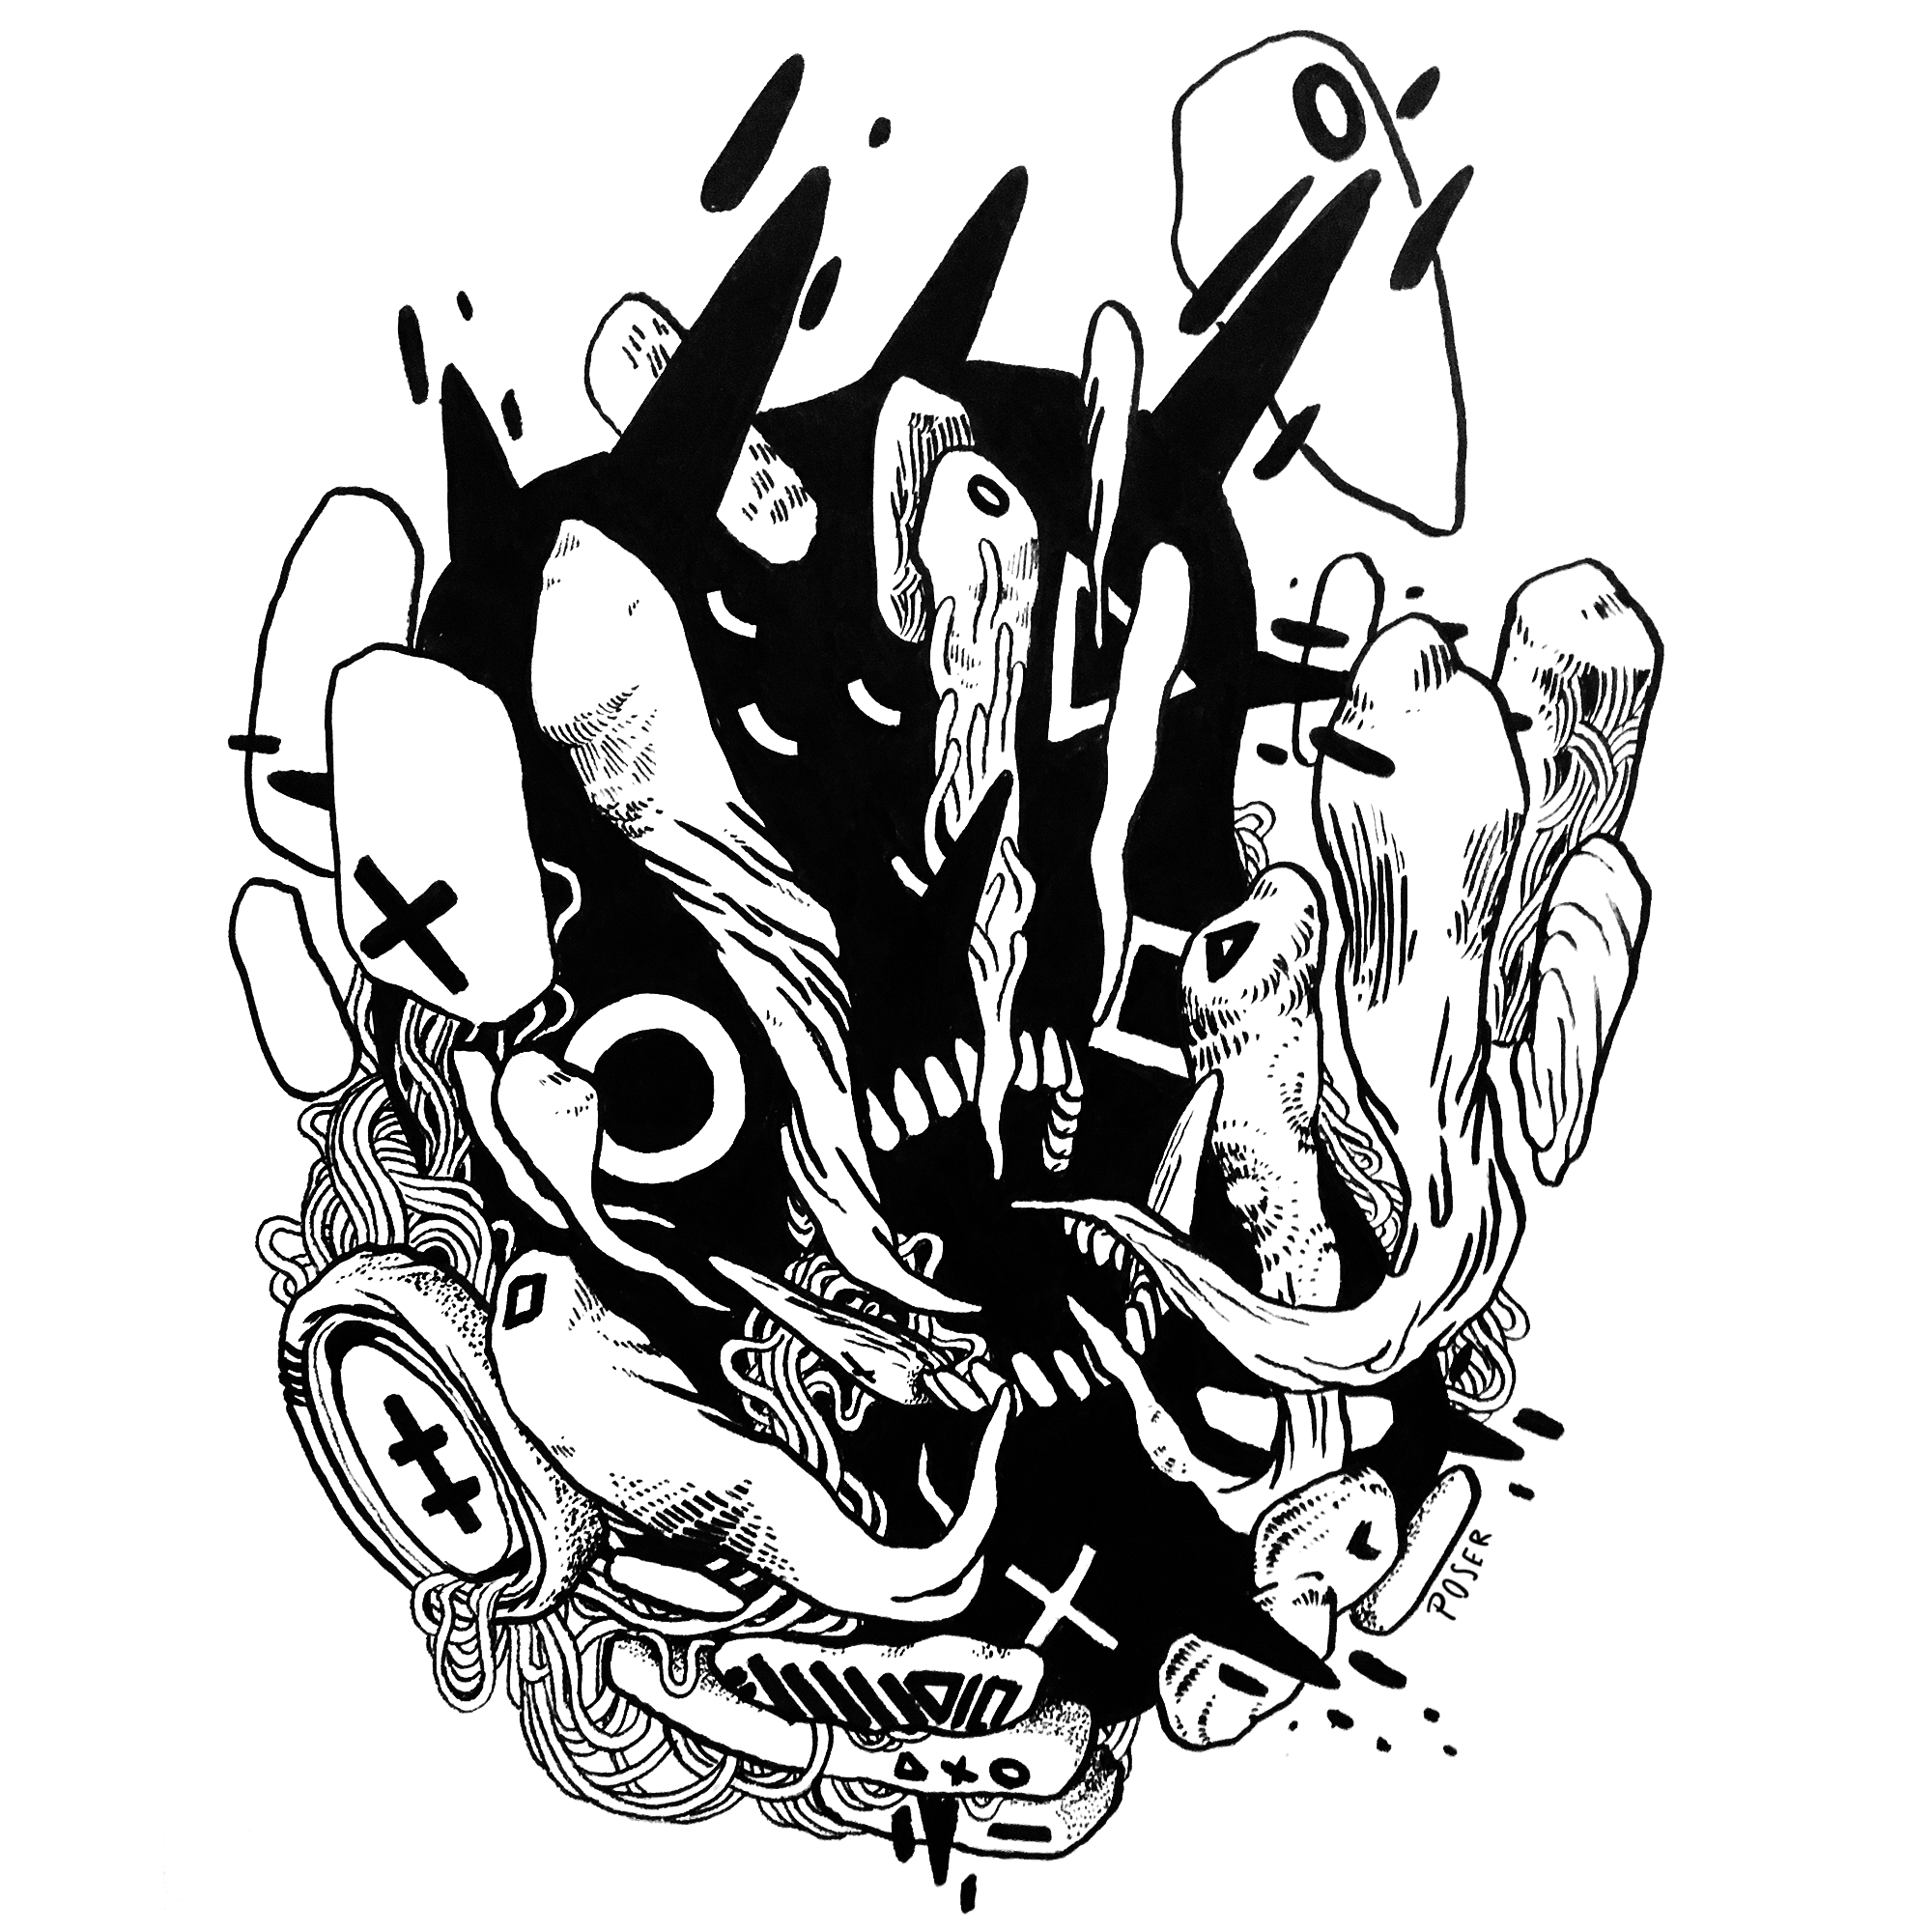 D E M O N 4 (2017) - Ink  (Stickers available in shop!)